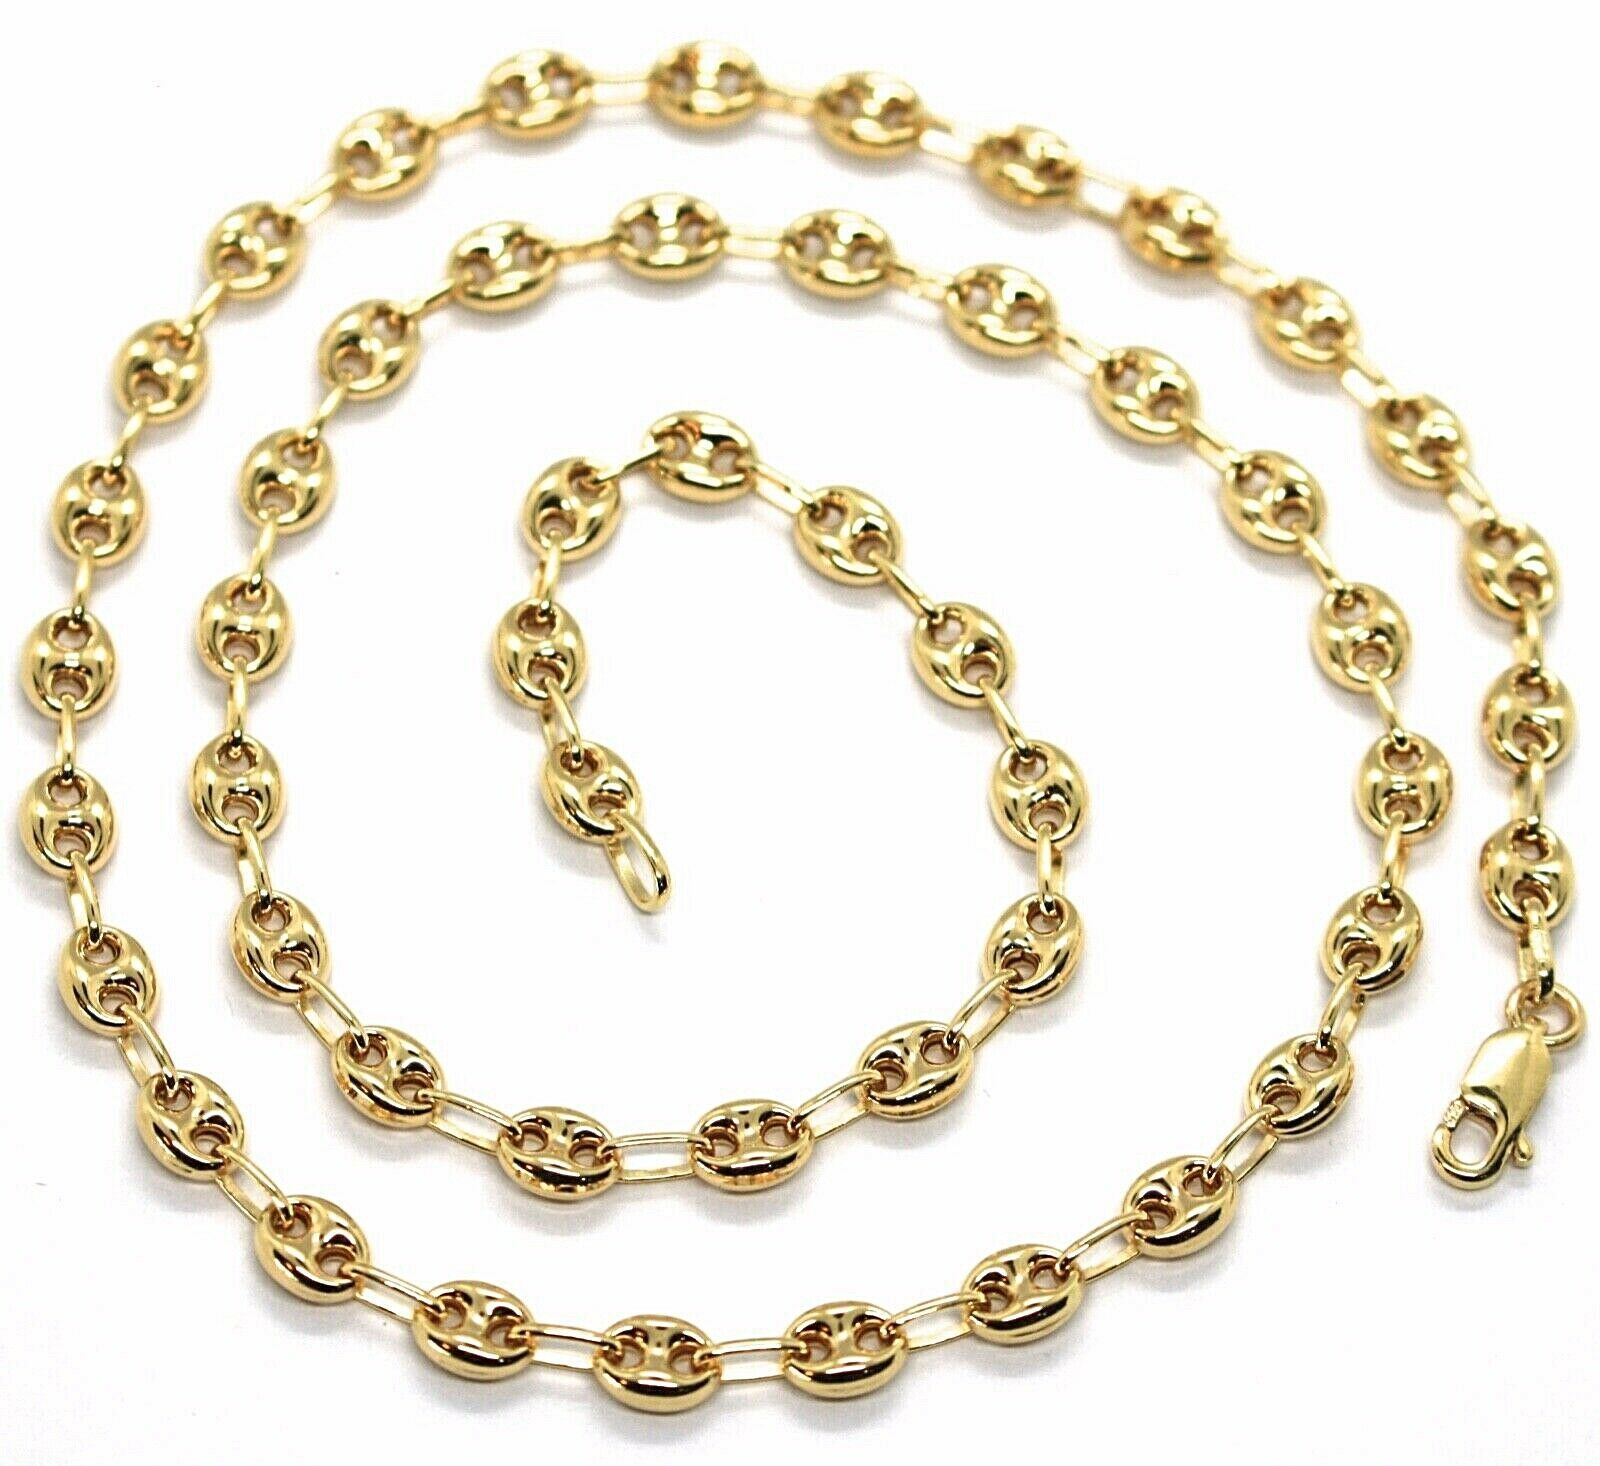 MASSIVE 18K YELLOW GOLD BIG MARINER CHAIN 5 MM, 24 INCHES, ITALY MADE NECKLACE